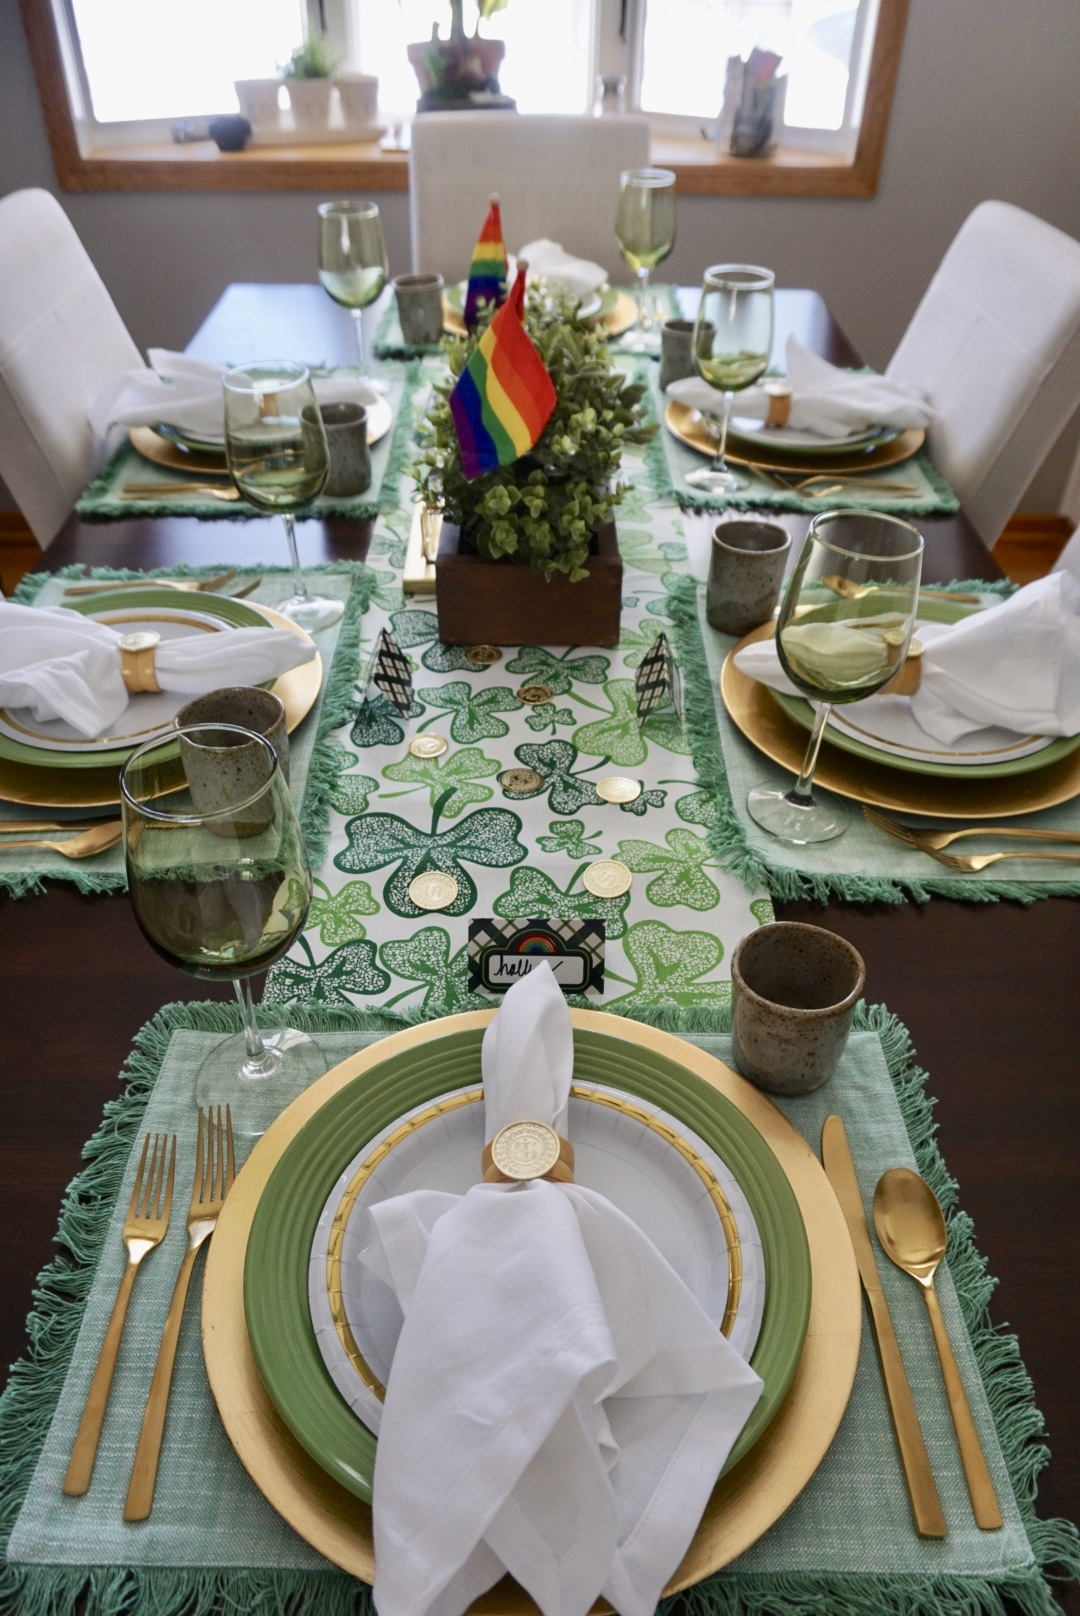 St. Patrick's Day tablescape with gold chargers, green plates, and gold accents.